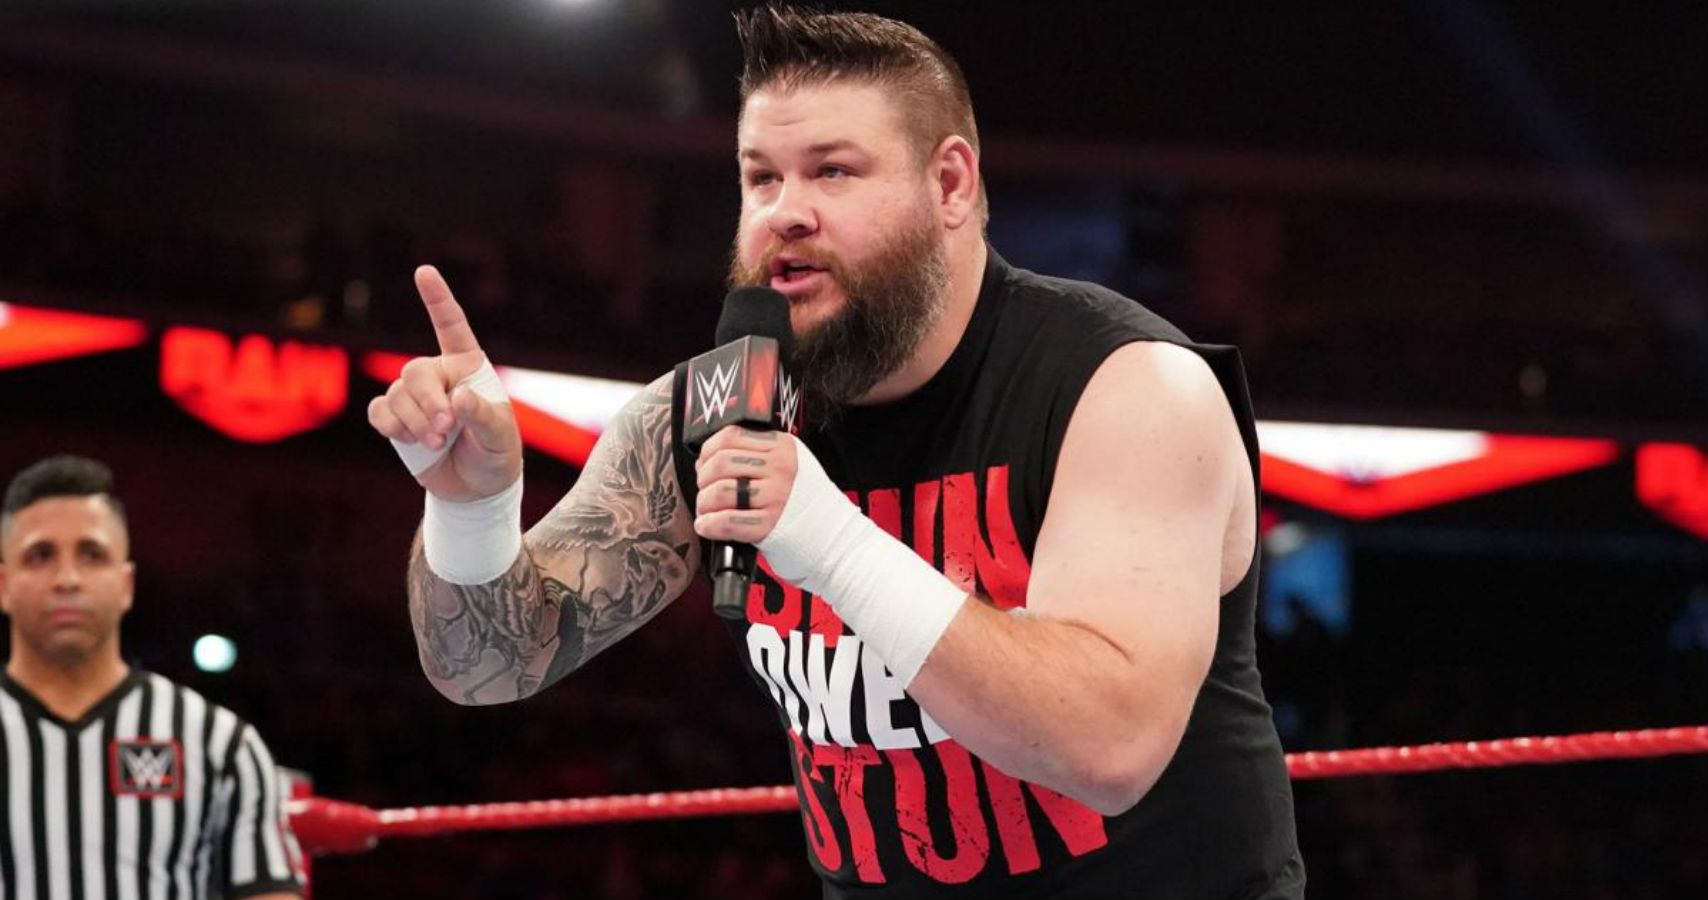 Kevin Owens confirms he is dealing with an ankle injury